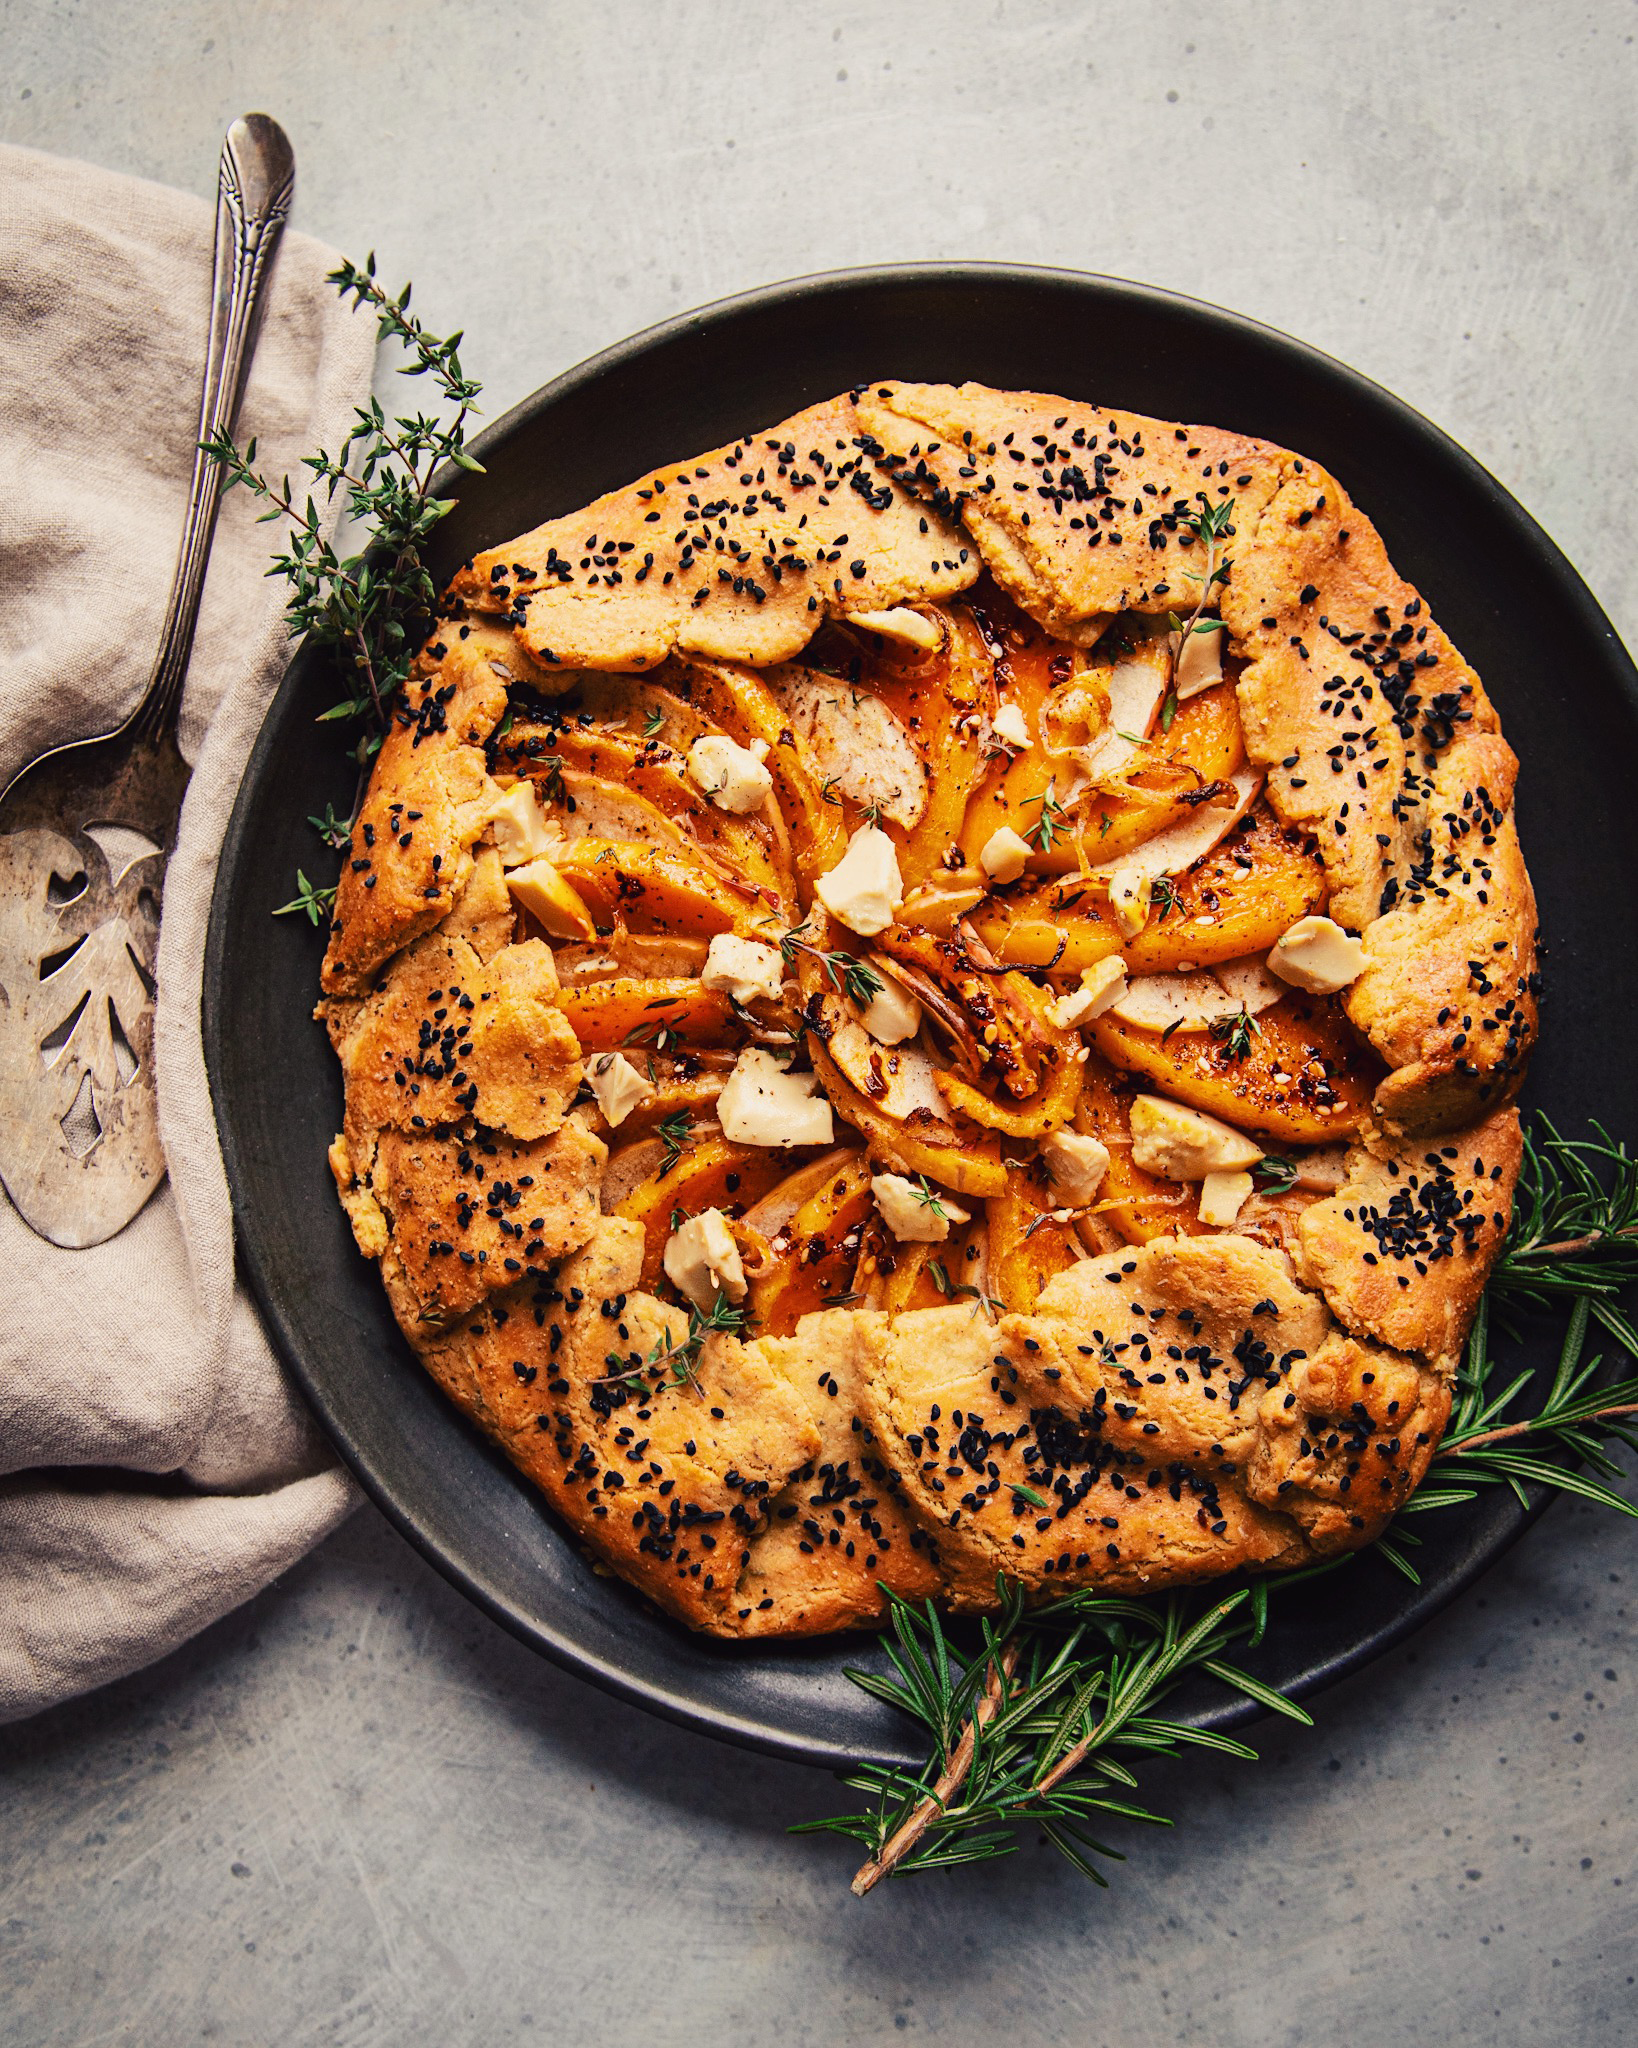 An overhead view of a vegan butternut patty on a matte black plate against a mottled gray background.  It is garnished with sprigs of thyme and rosemary.  There is a beige and antique linen pie tray on the side.